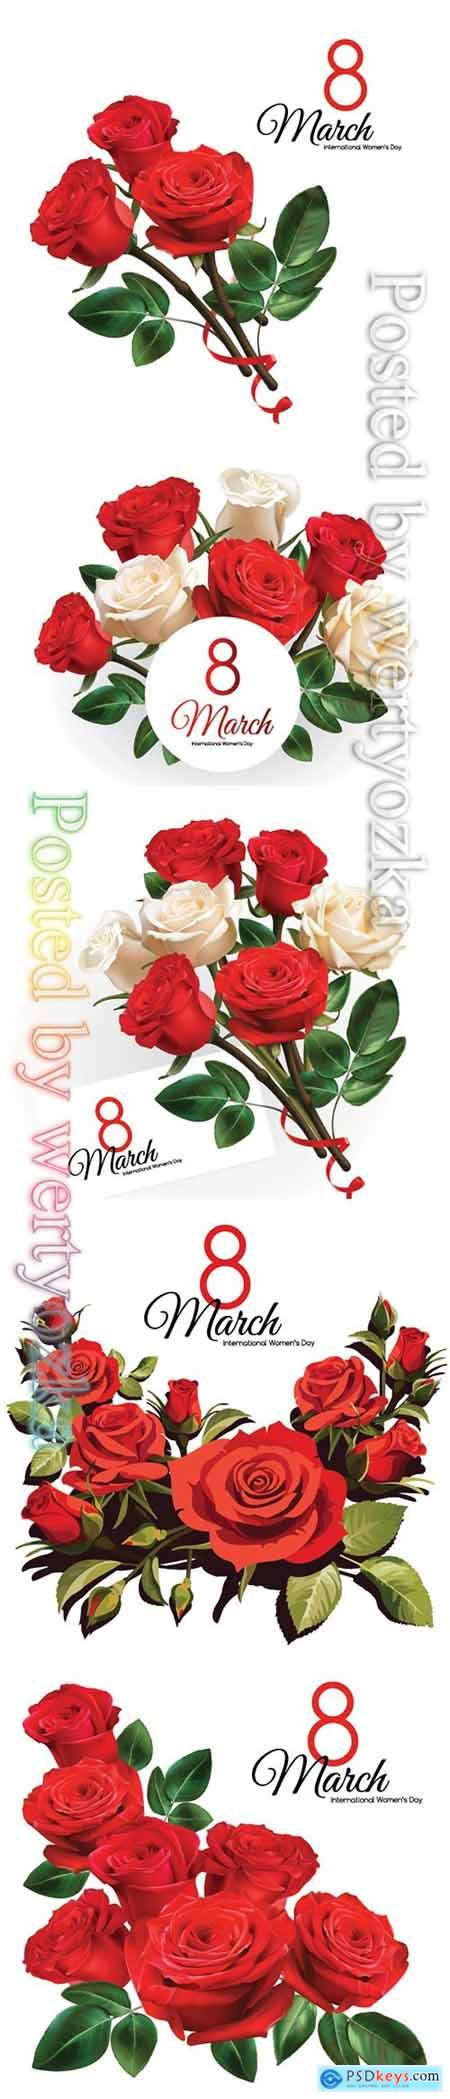 8 March Womens Day greeting card template with red roses